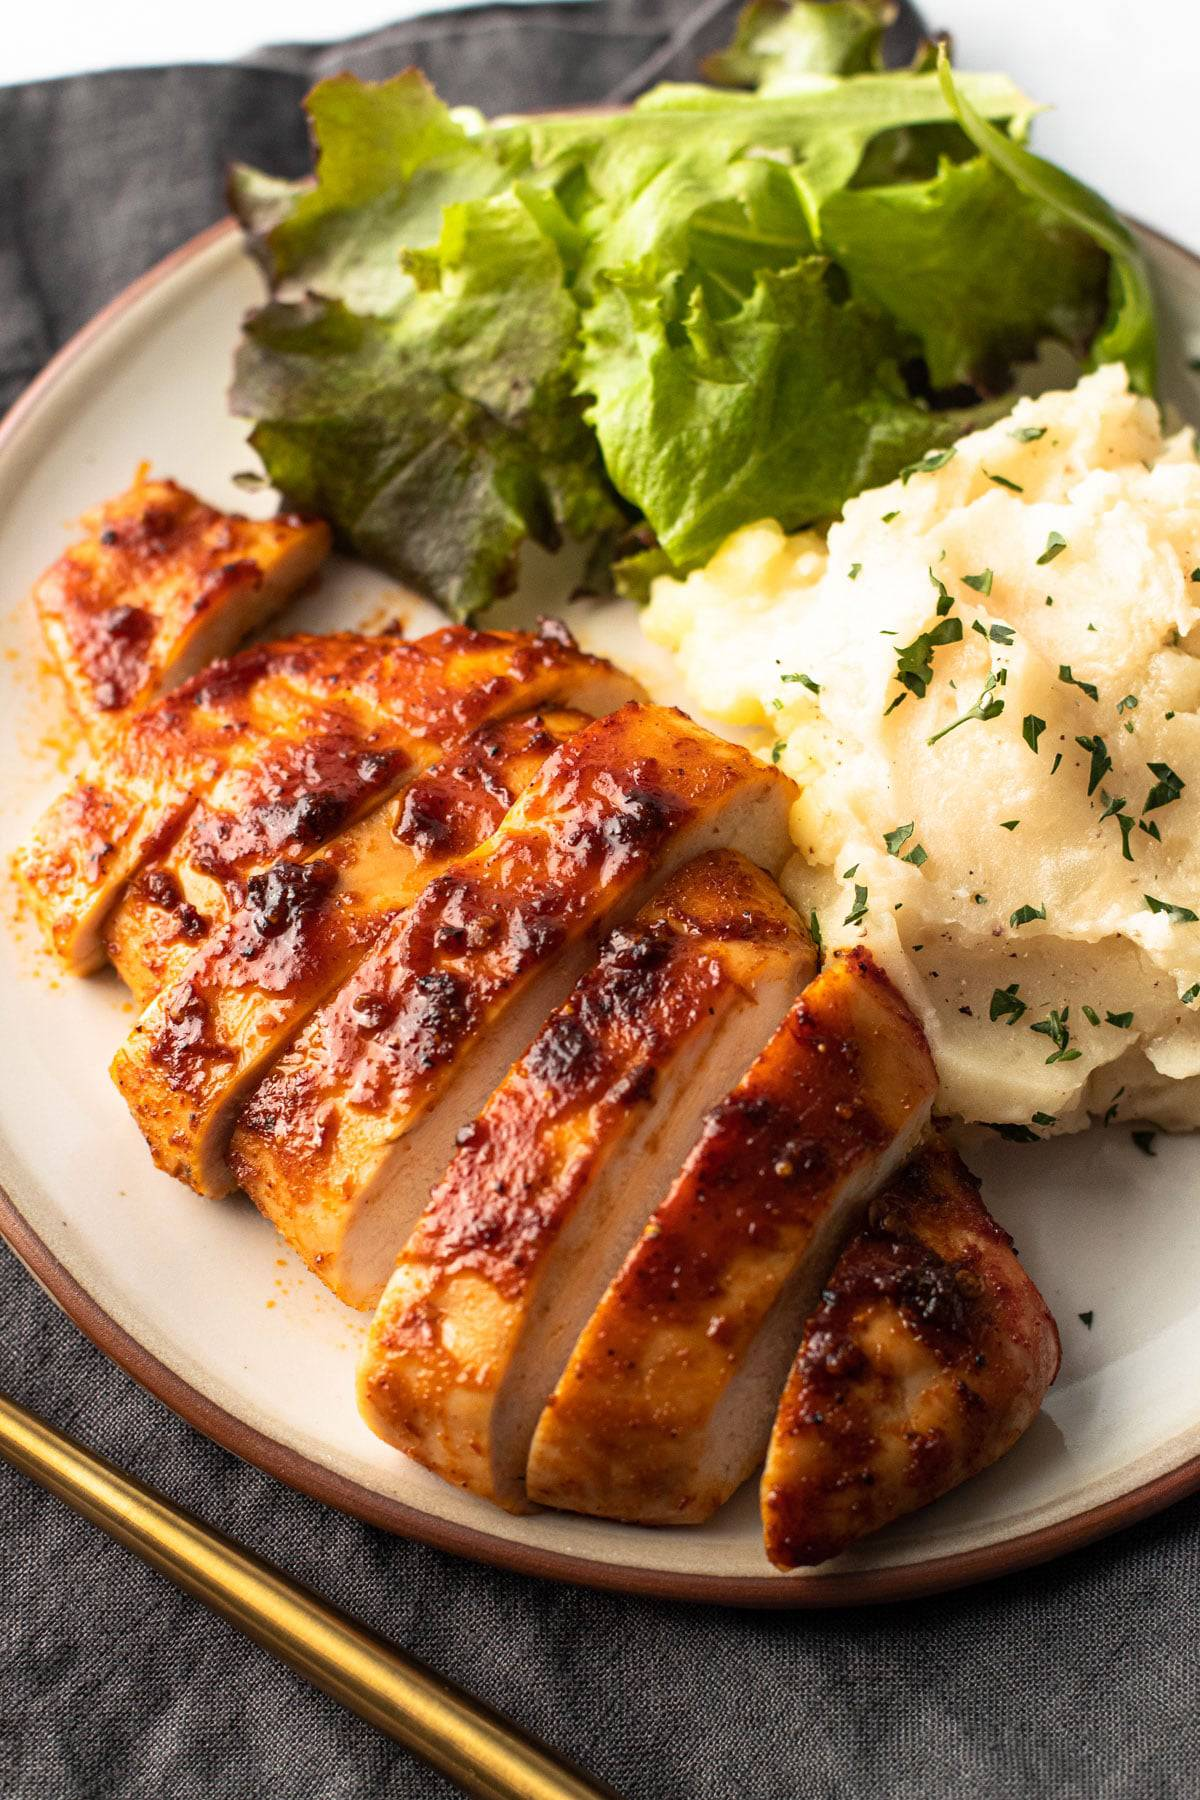 Sliced baked chipotle chicken.